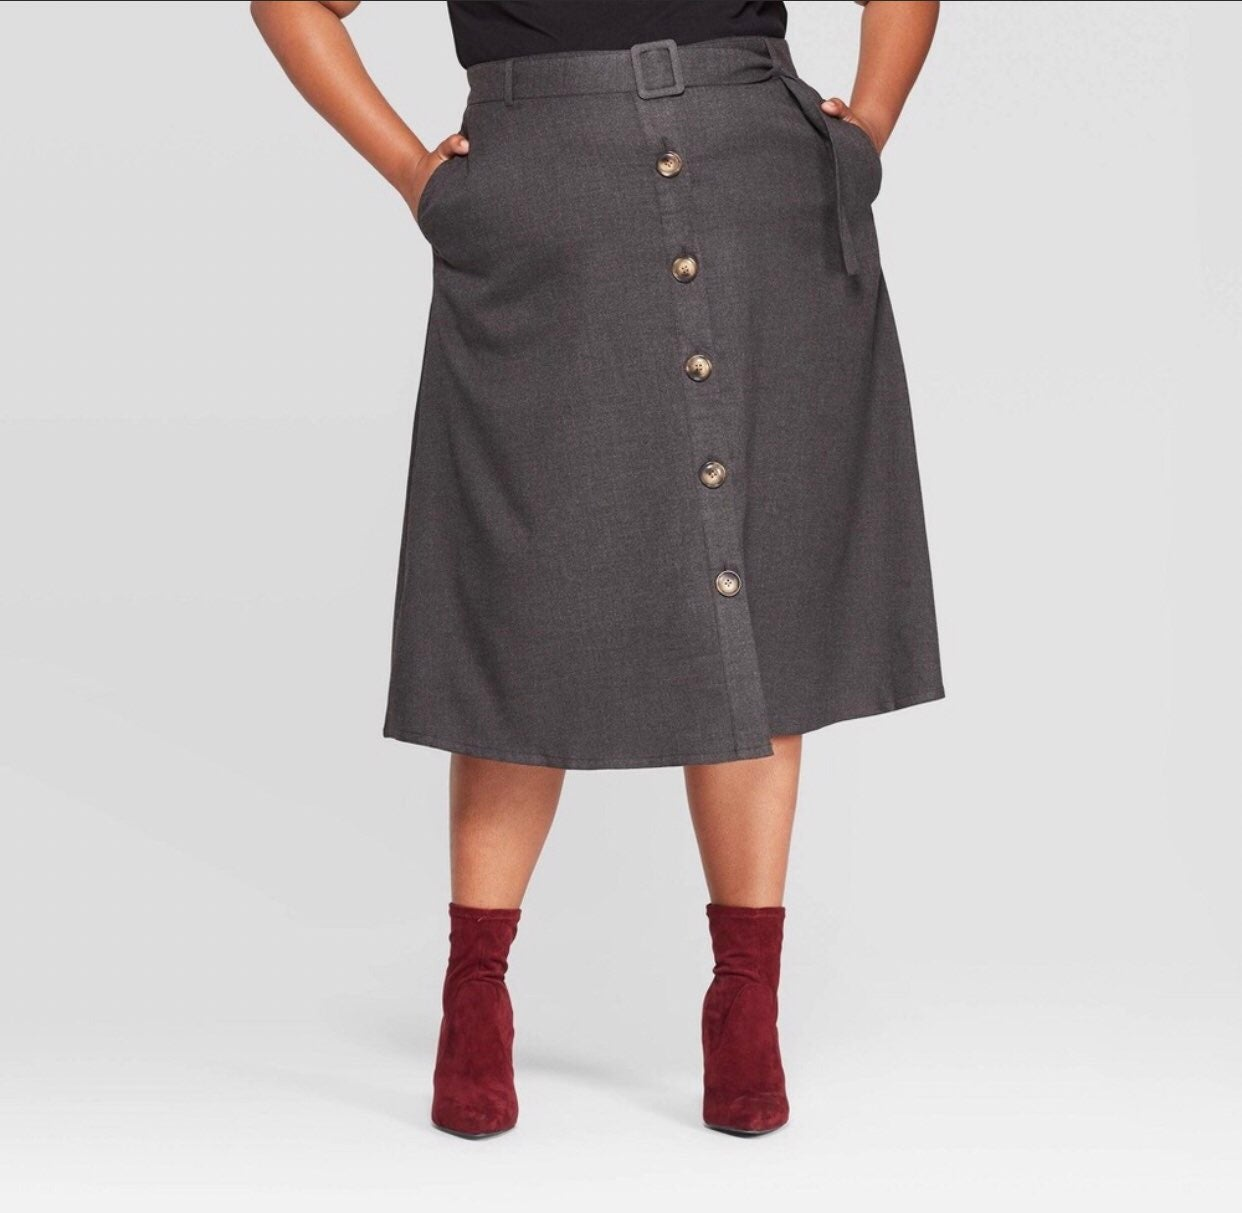 Ava & Viv Skirt w/Pockets, Size X (14W)